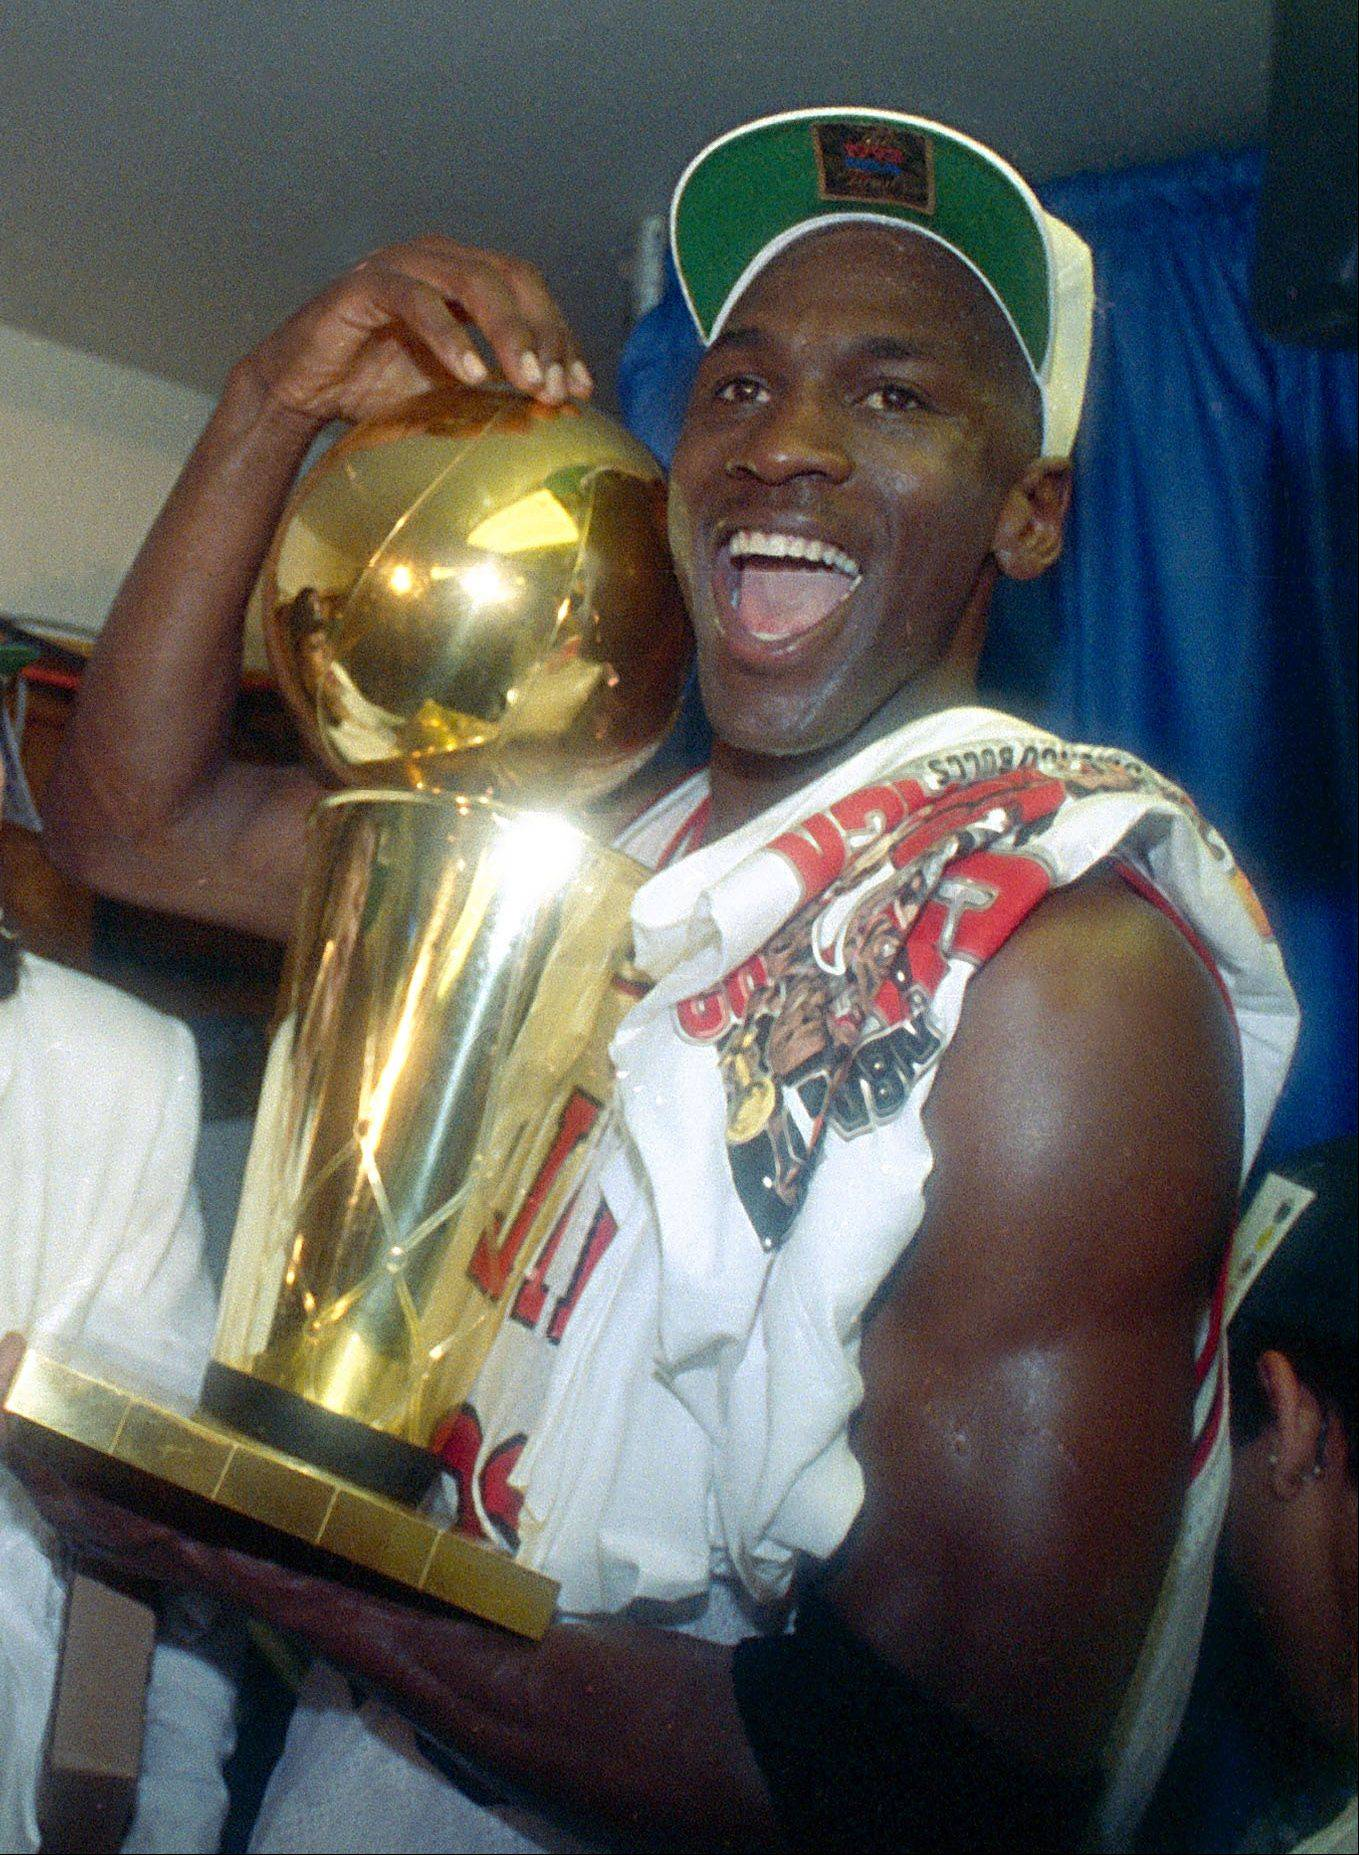 This is a june 14, 1992 file photo showing Chicago Bulls' Michael Jordan celebrating with the NBA trophy after the Bulls beat the Portland Trail Blazers 97-93 in Chicago, to win their second straight NBA title.